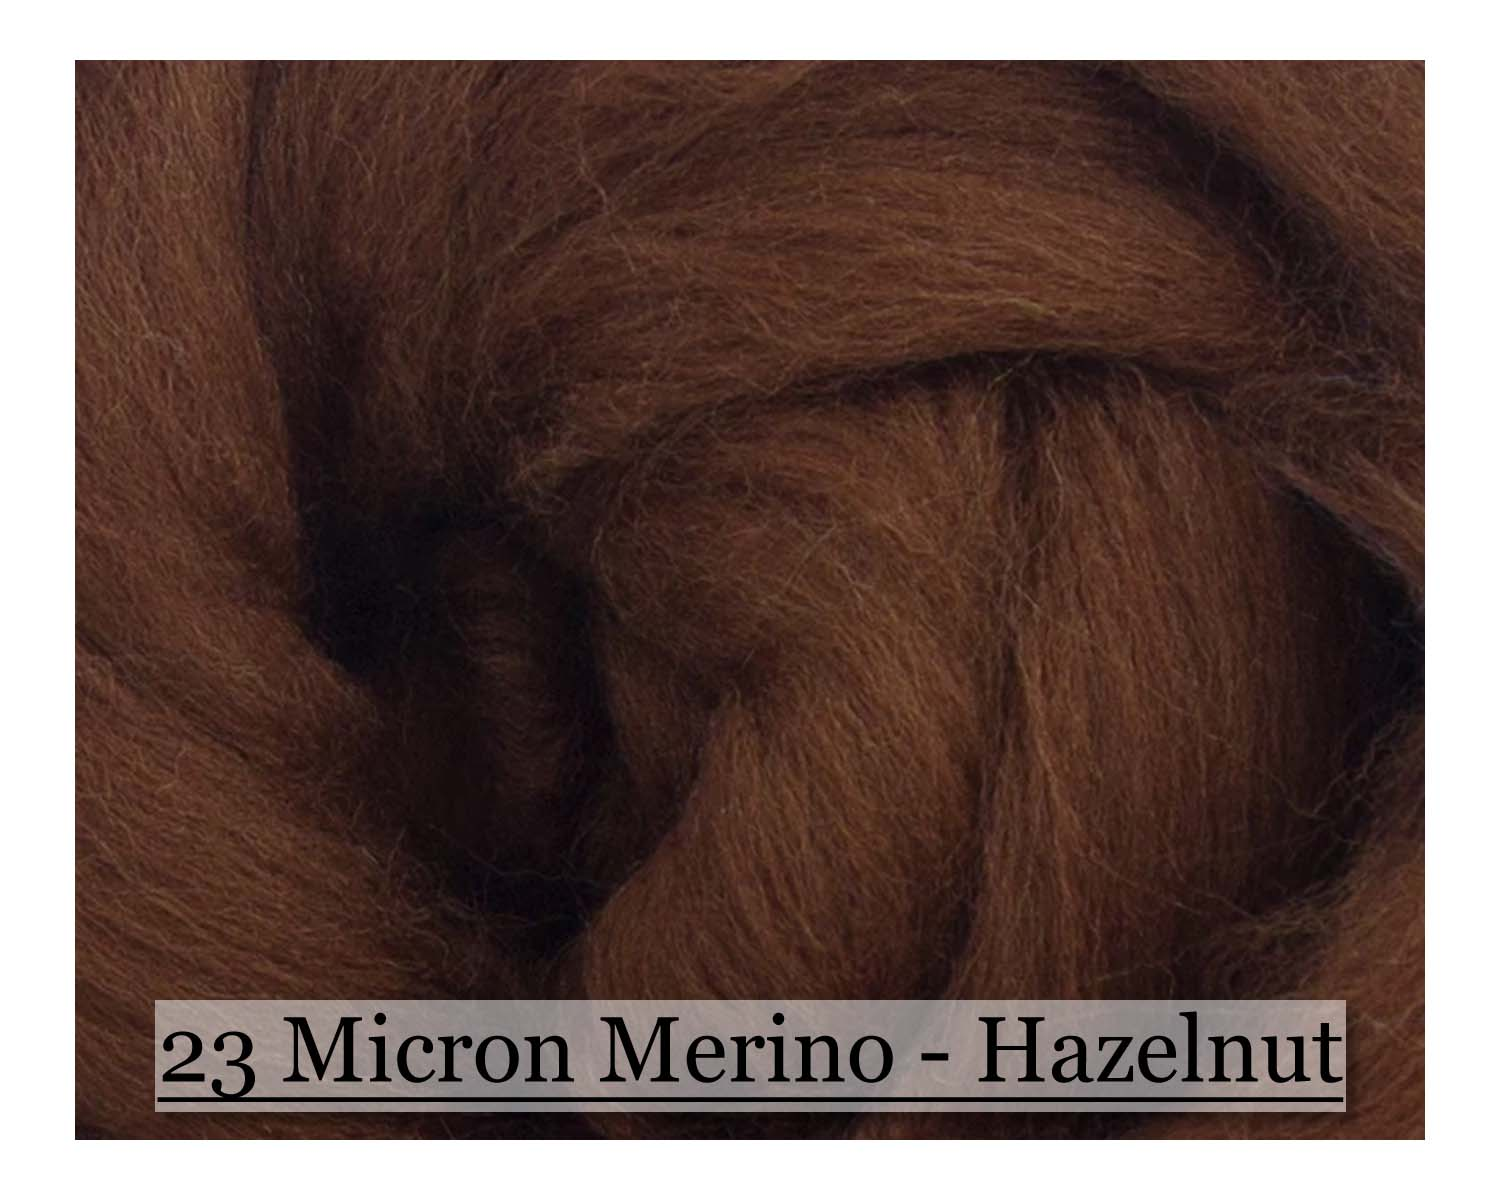 Hazelnut -  Merino Wool Top - 23 Micron